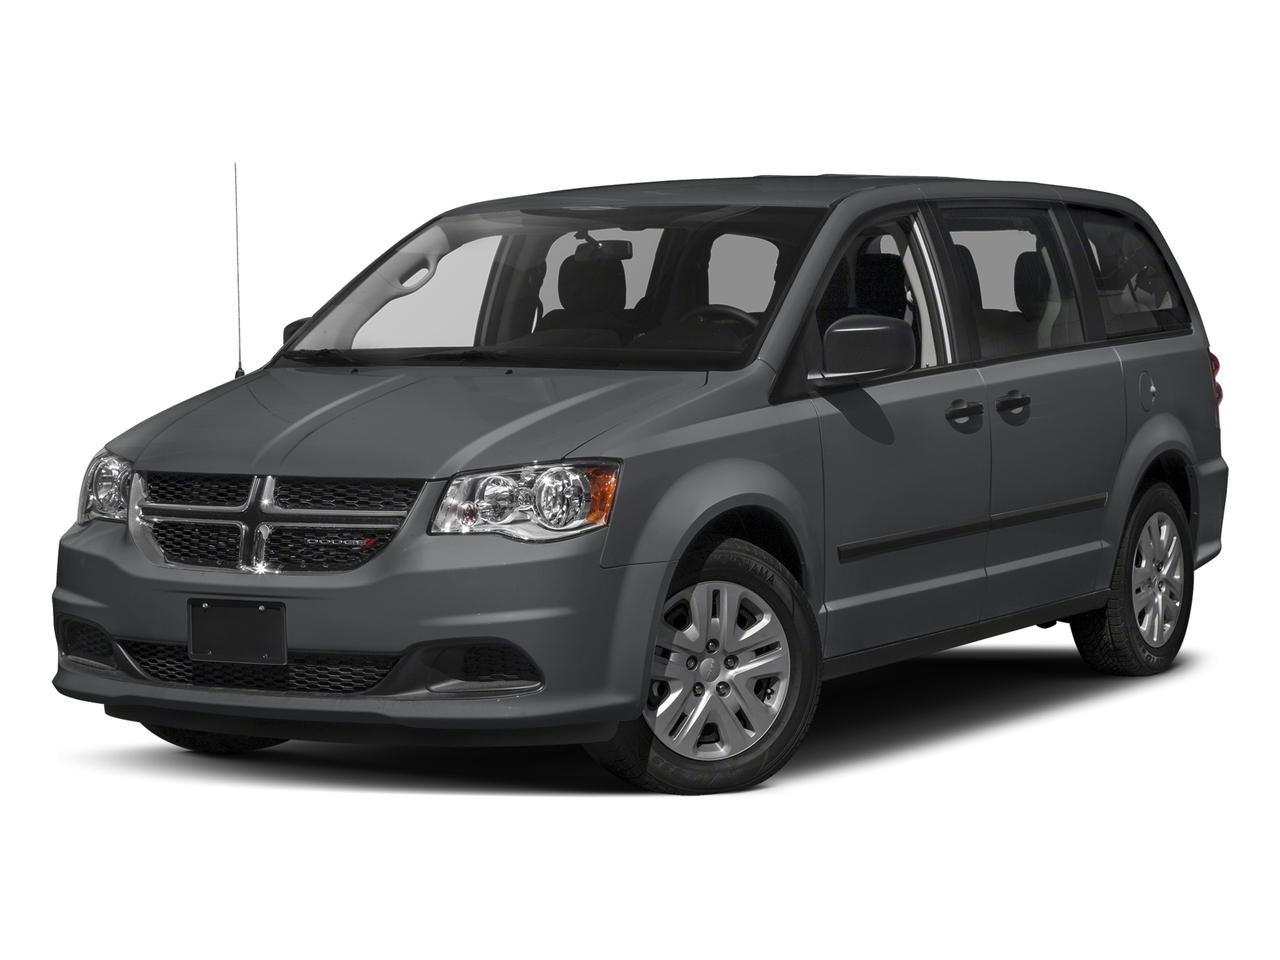 2017 Dodge Grand Caravan Vehicle Photo in Medina, OH 44256